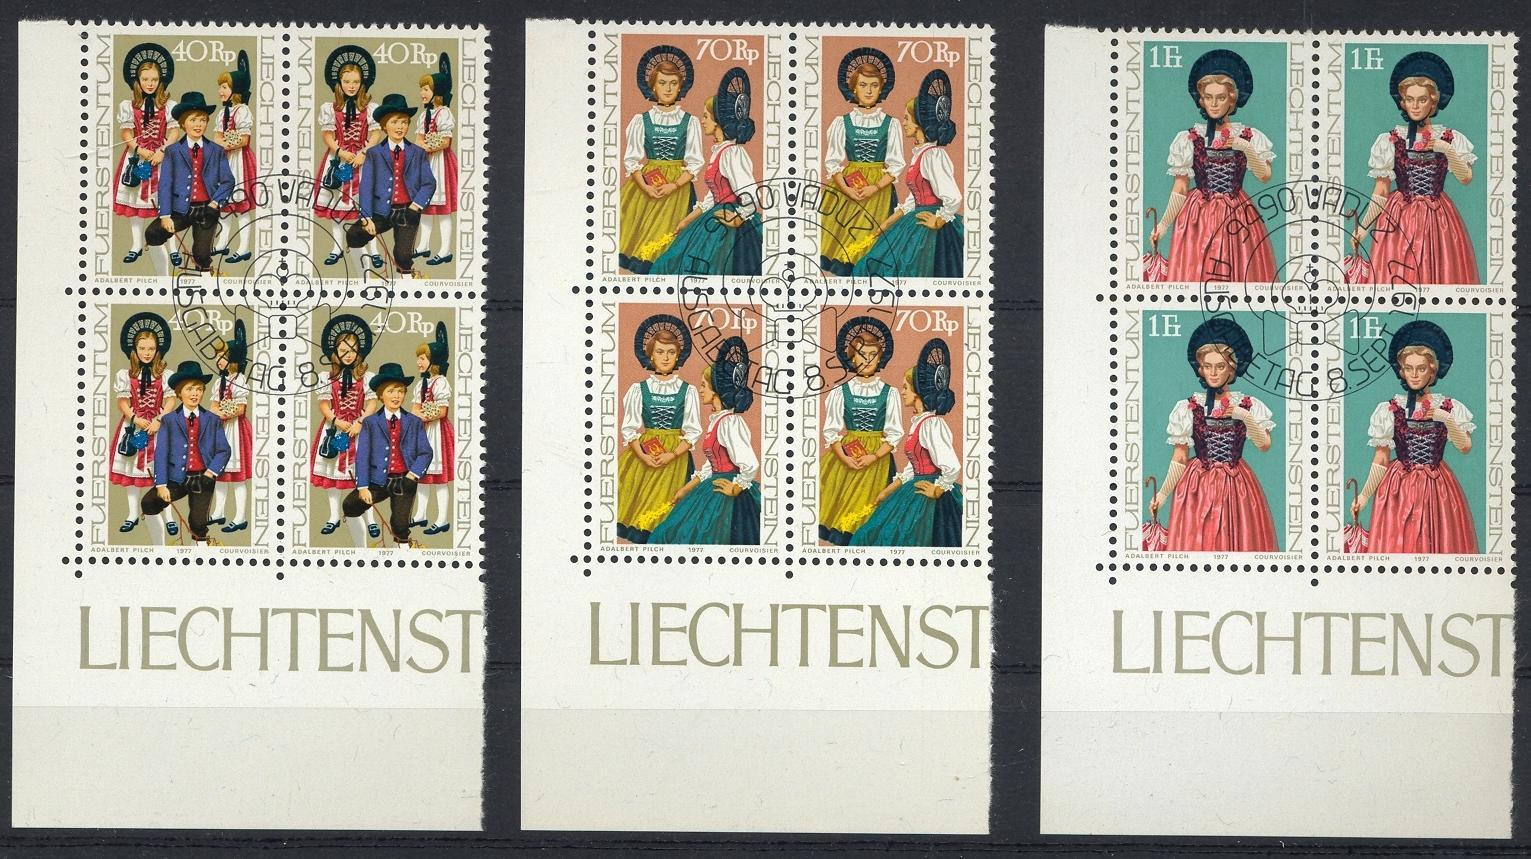 Stamps with Costumes from Liechtenstein (image for product #032218)